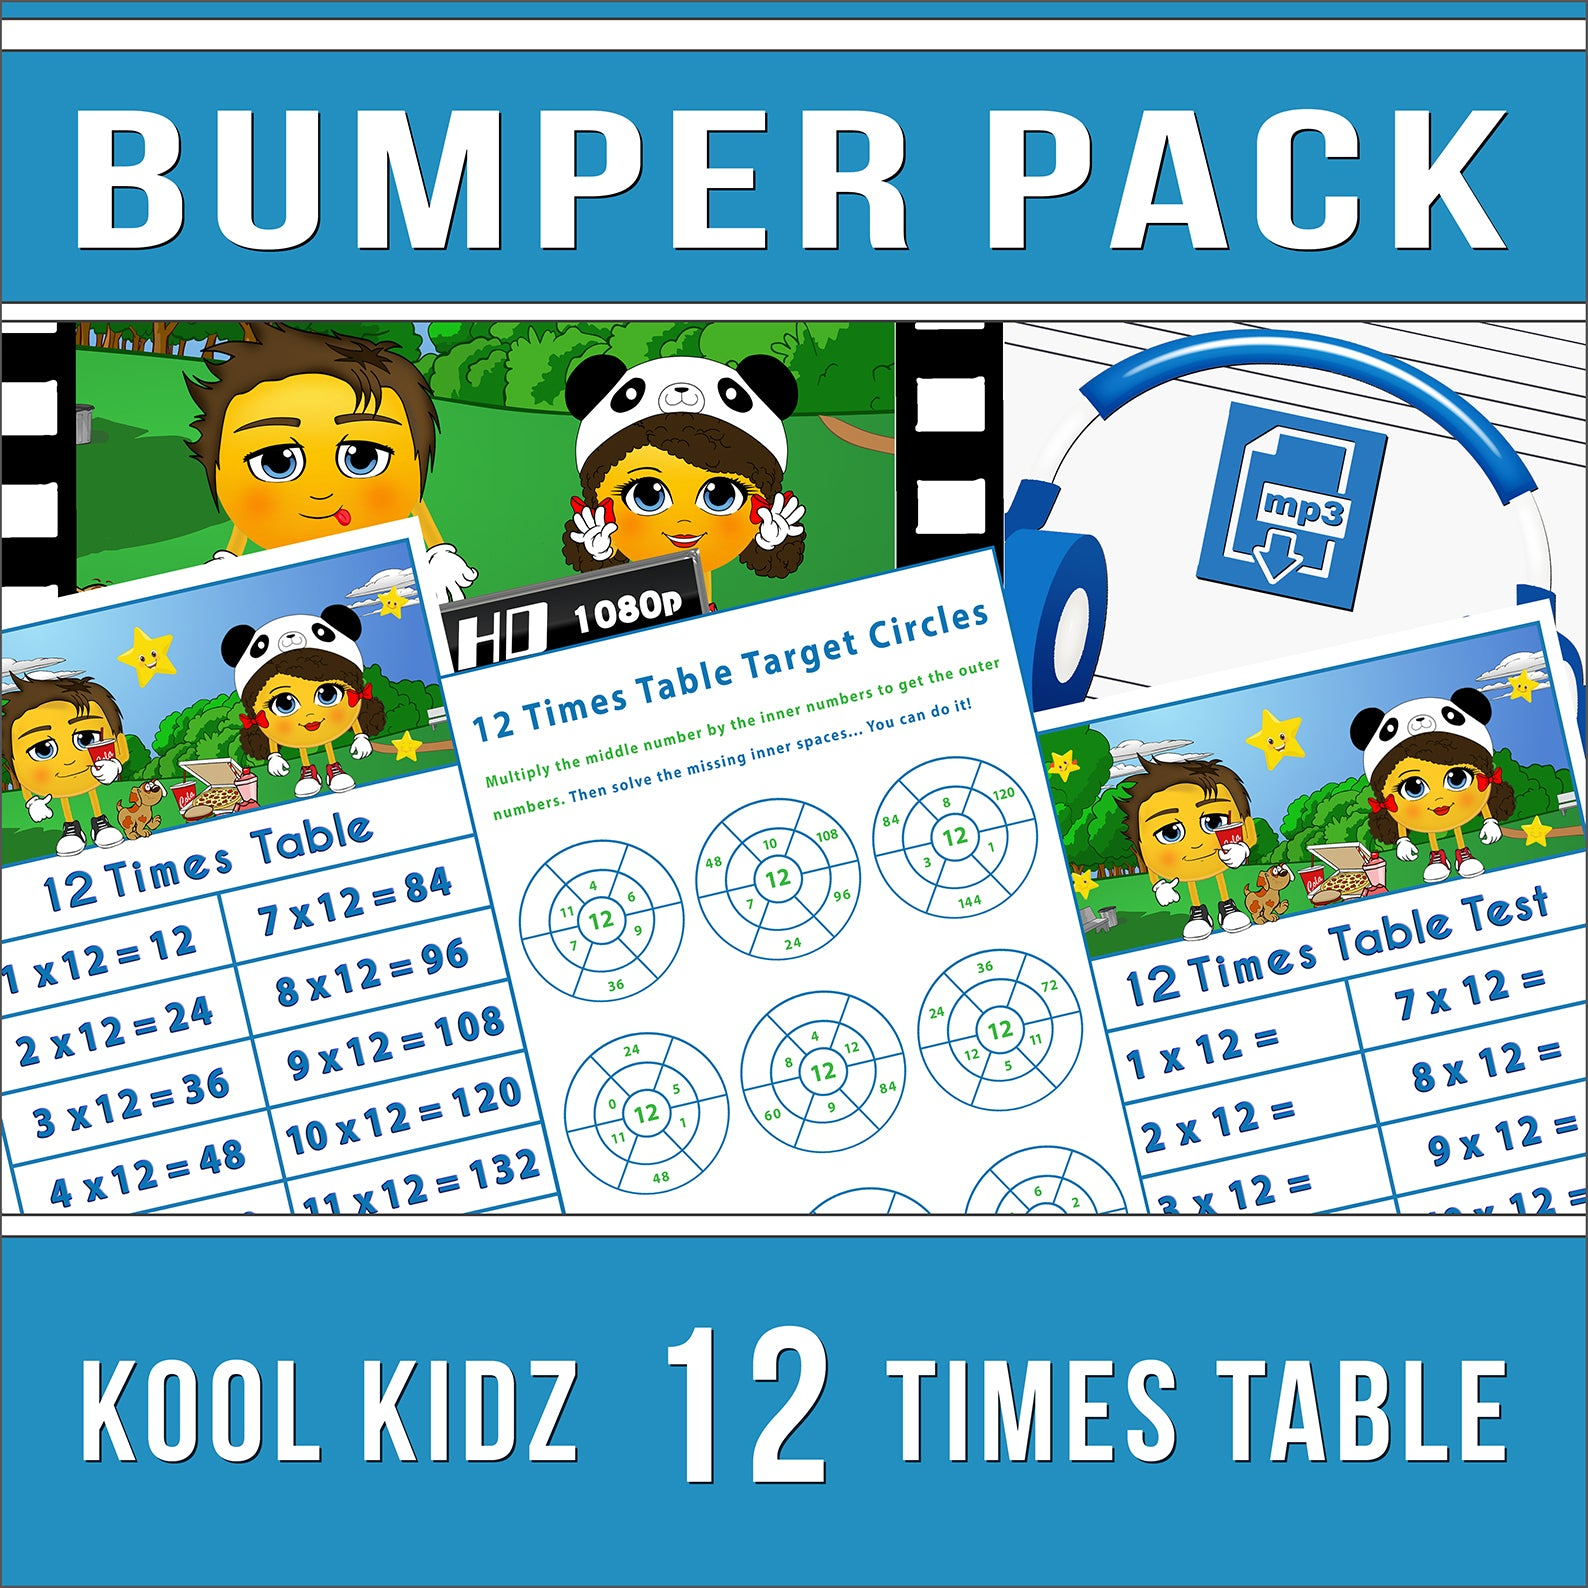 12 Times Table Bumper Pack